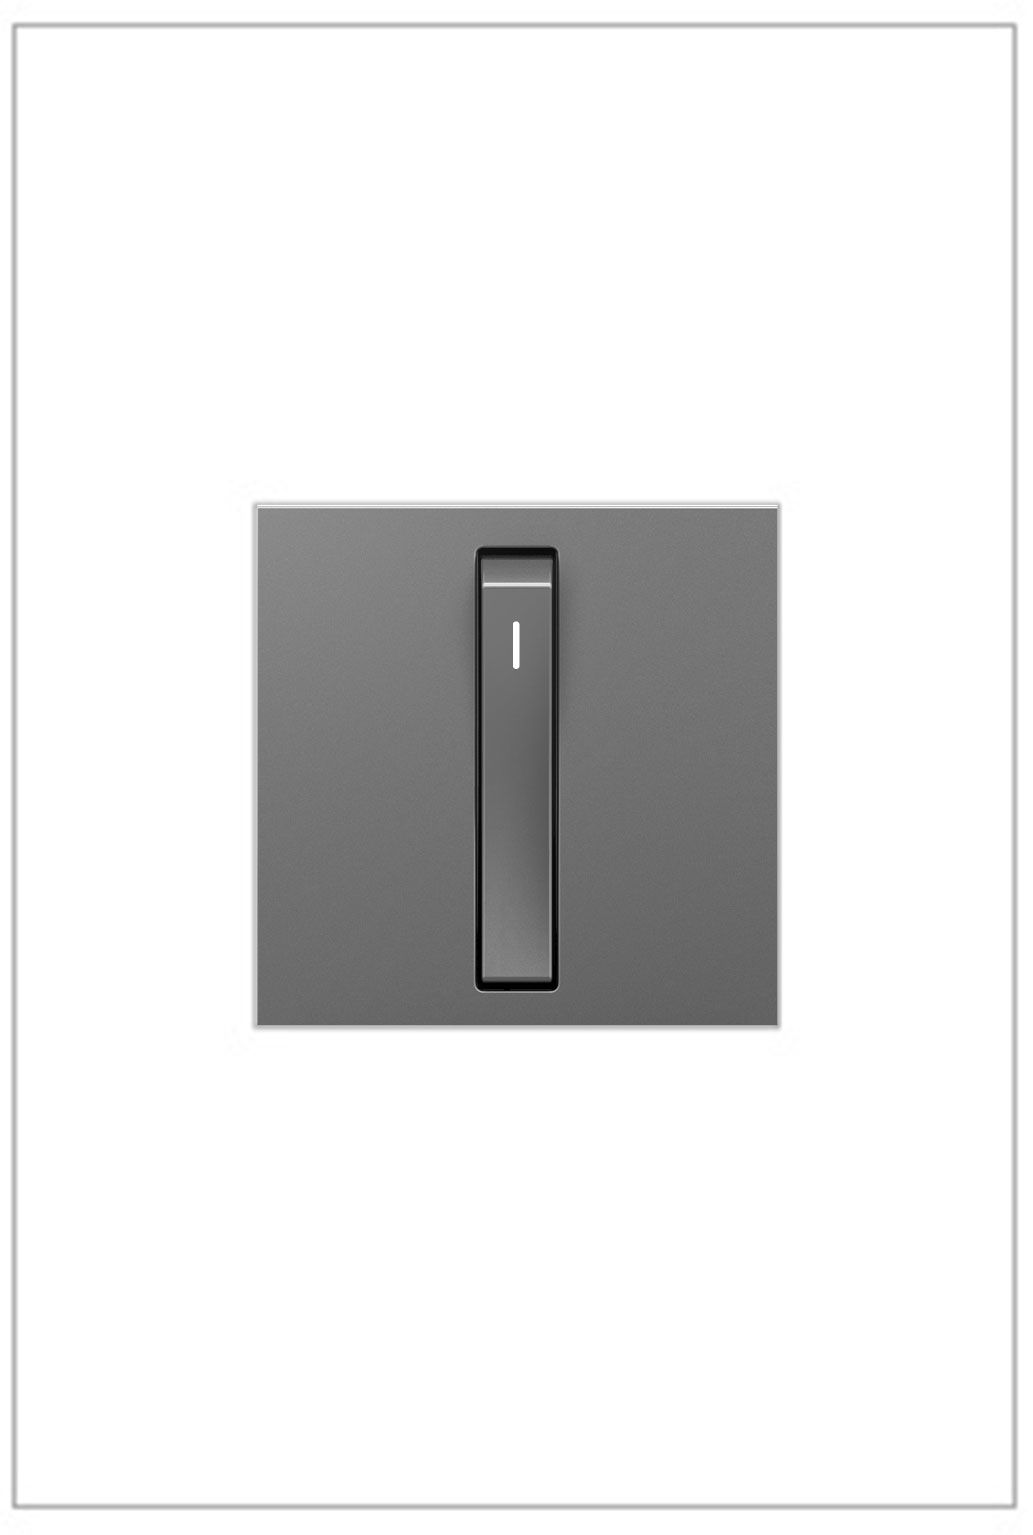 Adorne  Light Switches   Lighting Controls   by Legrandadorne  Light Switches   Lighting Controls   by Legrand   Dream  . Adorne Lighting Control. Home Design Ideas